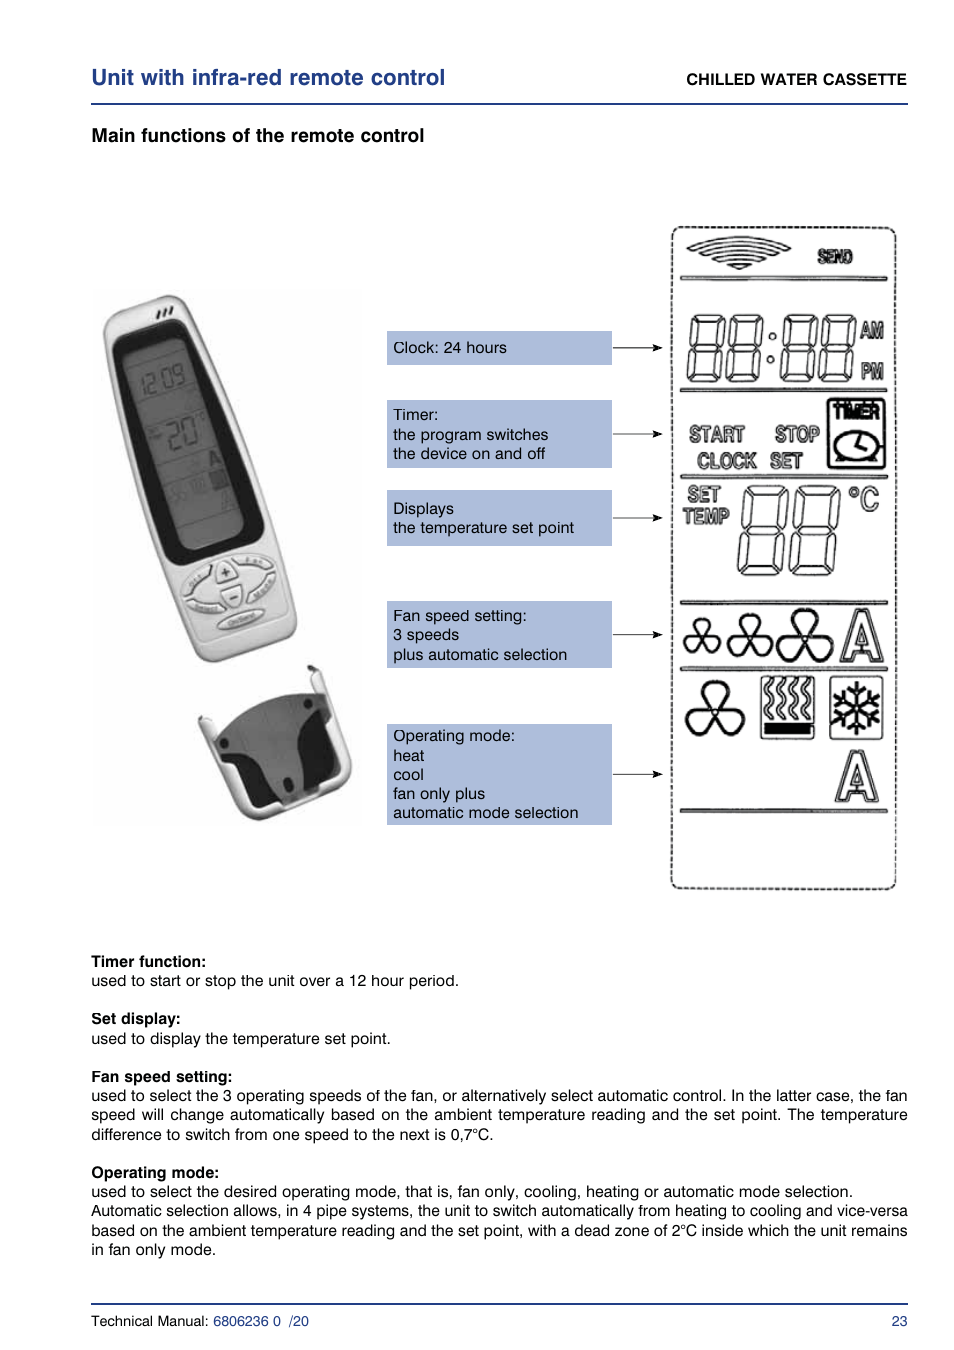 Unit with infra-red remote control | Airedale Chilled Water Cassette 2kW -  11kW User Manual | Page 22 / 34